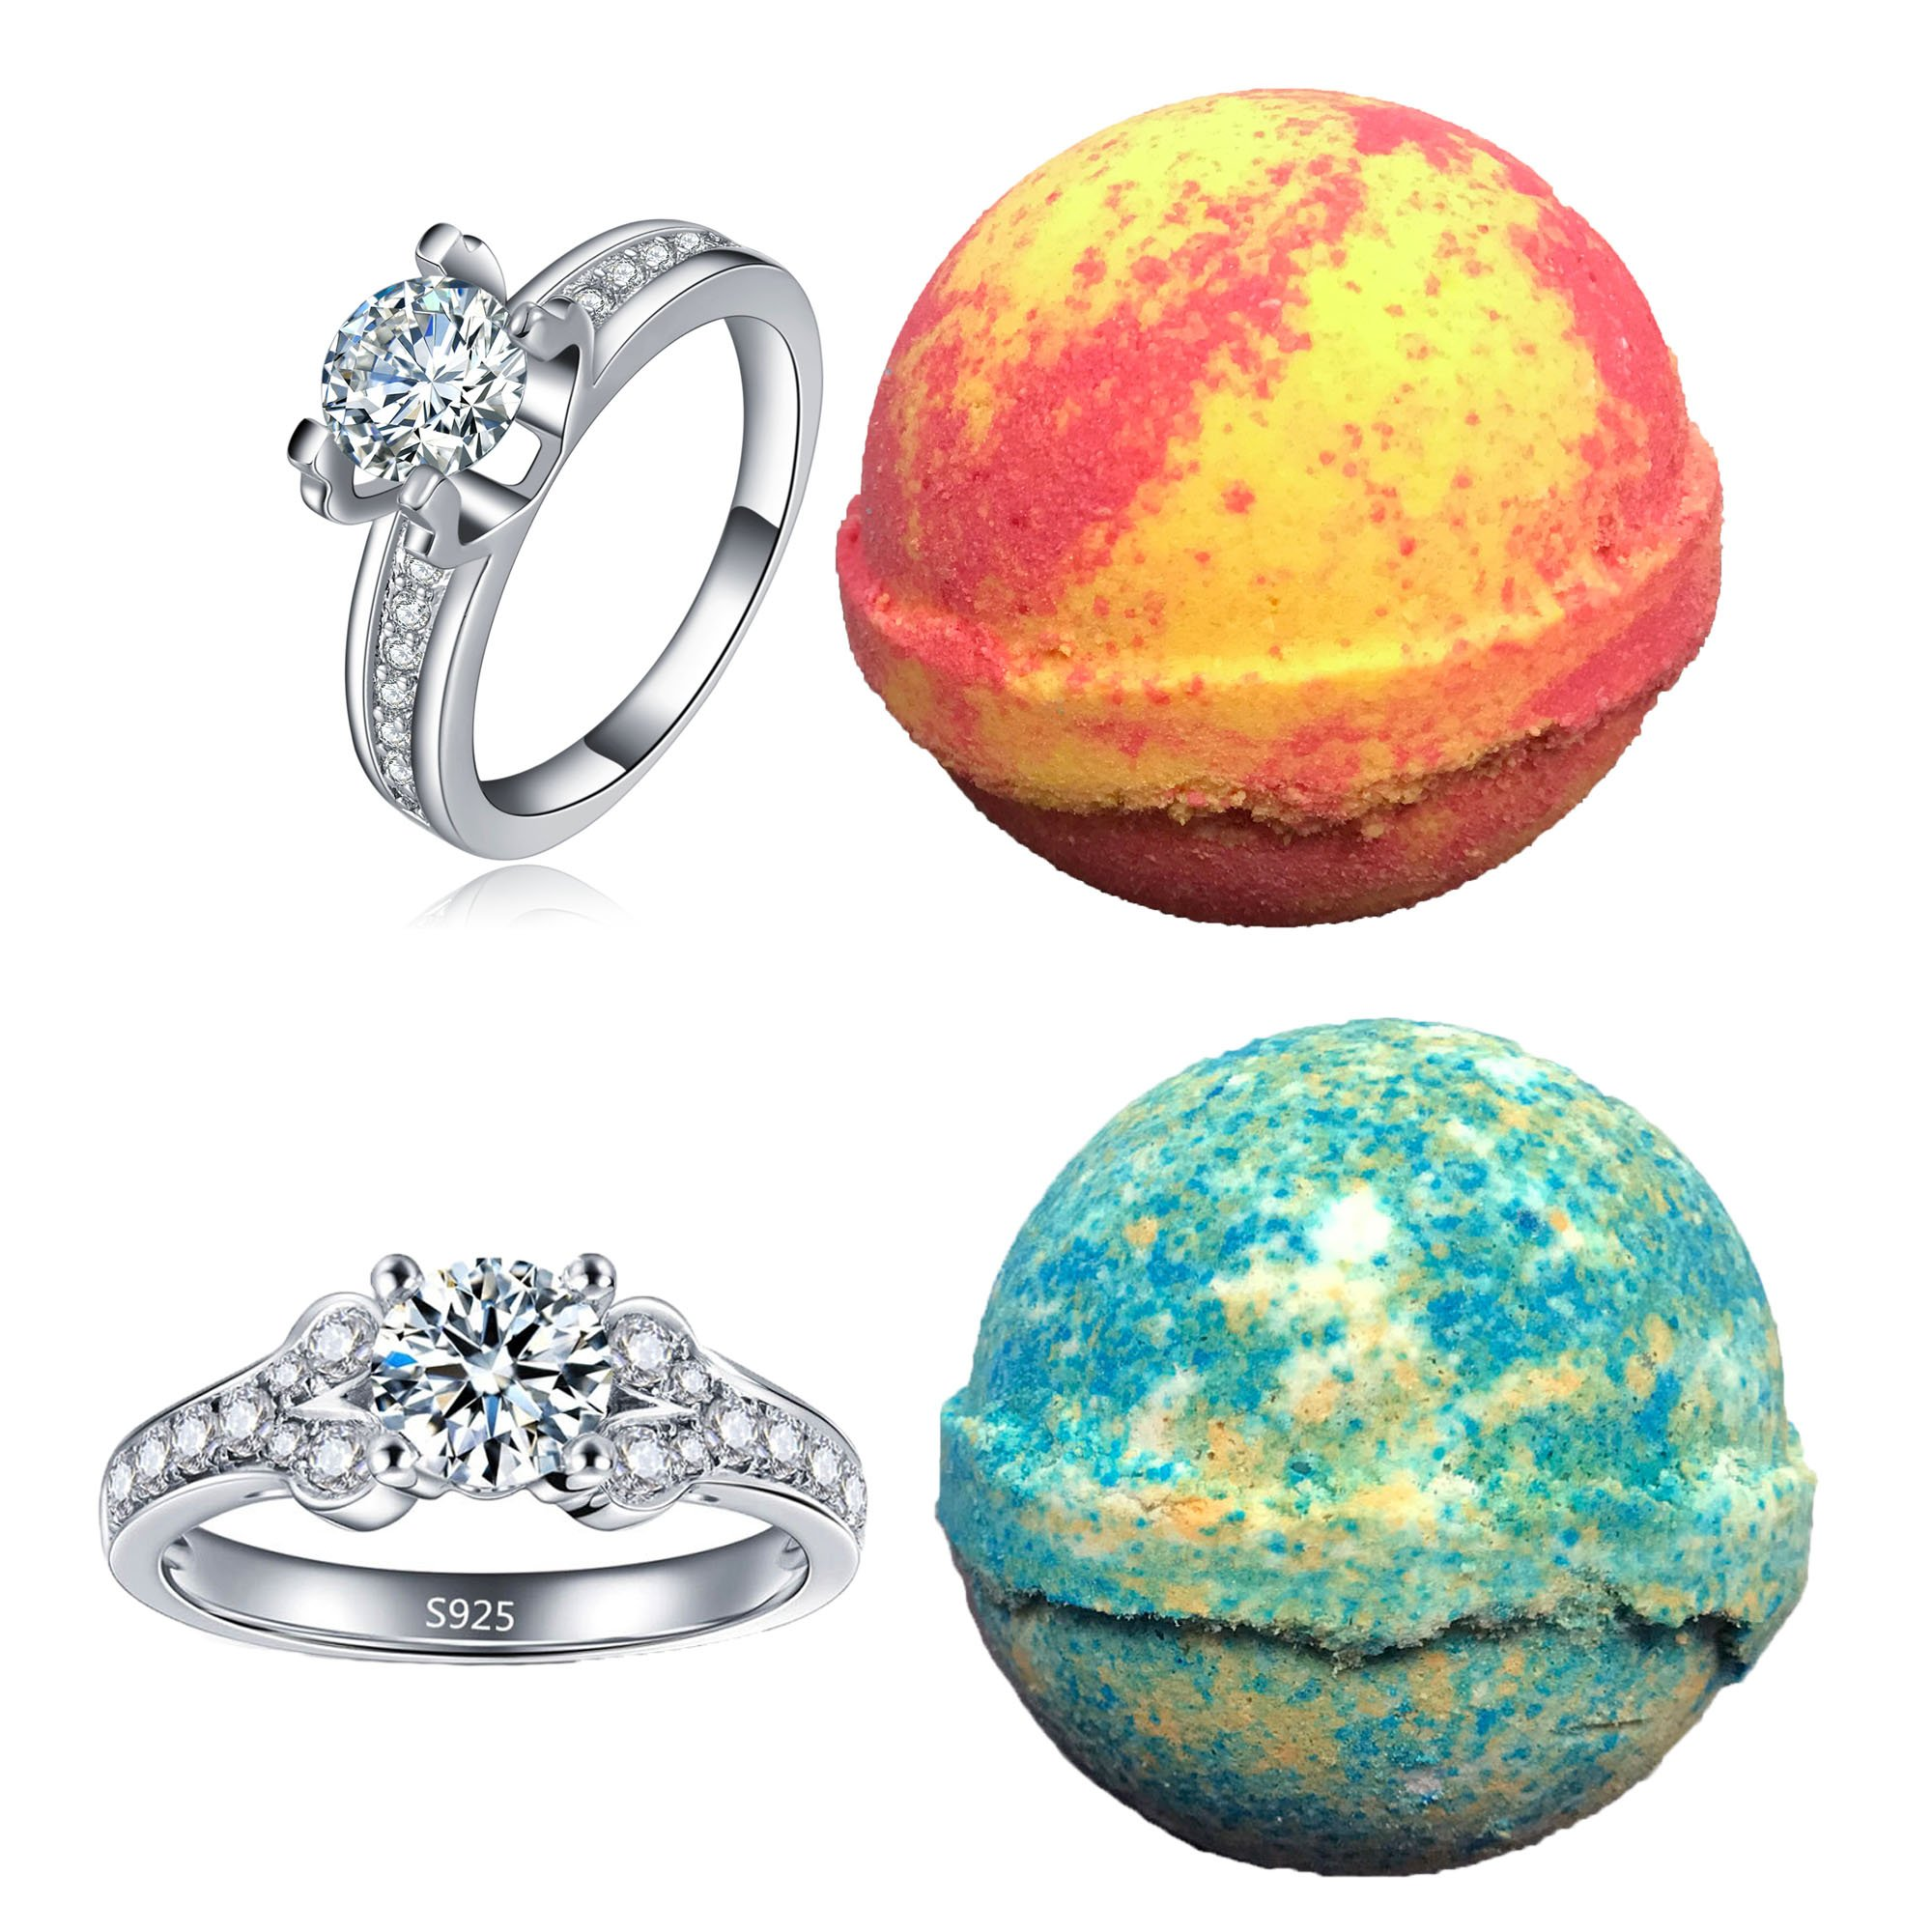 Amazon Com Bath Bomb Set 2 With A Surprise Ring Inside